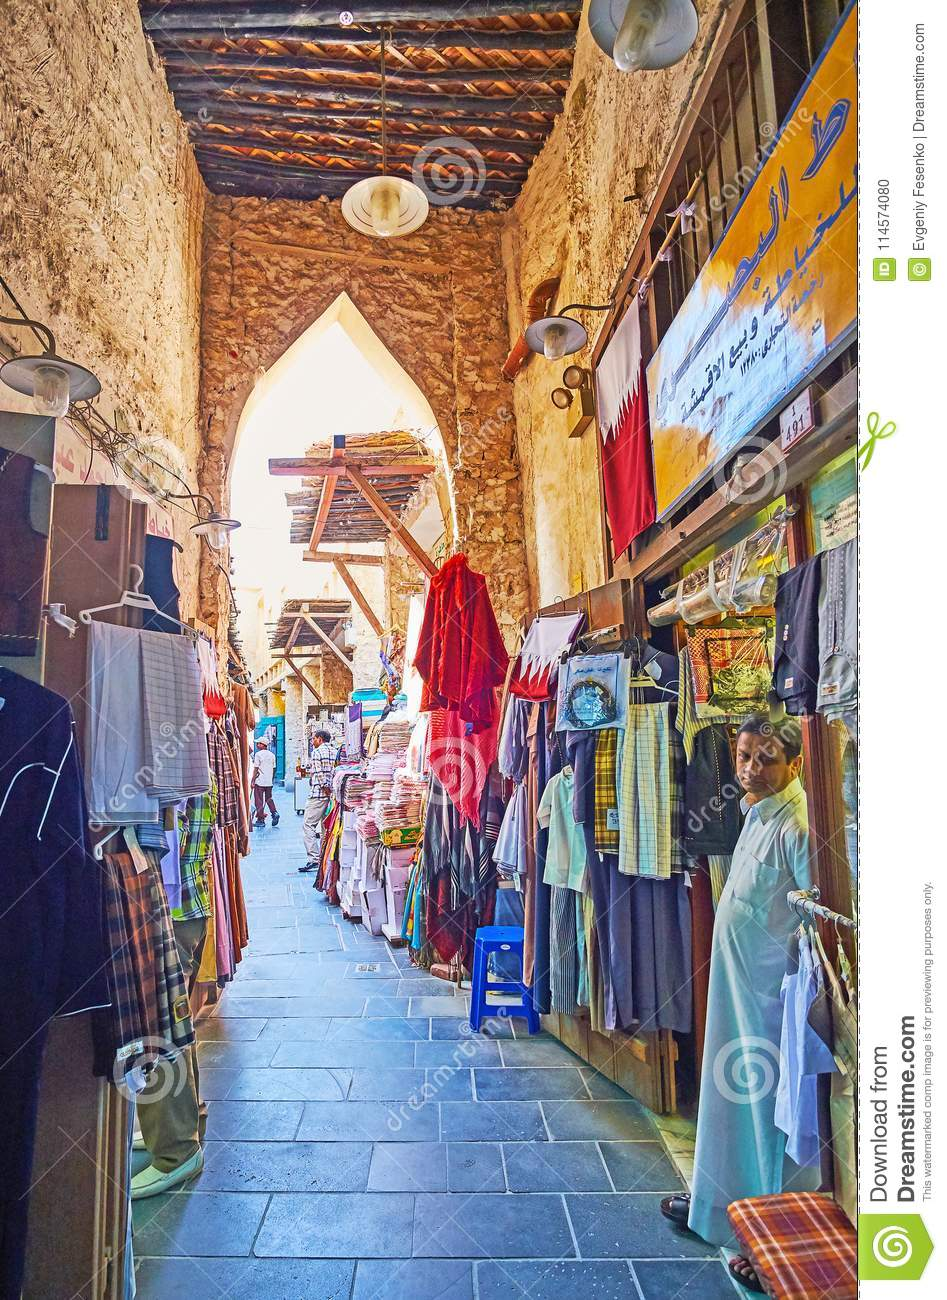 Clothes Stores In Souq Waqif, Doha, Qatar Editorial Image - Image of